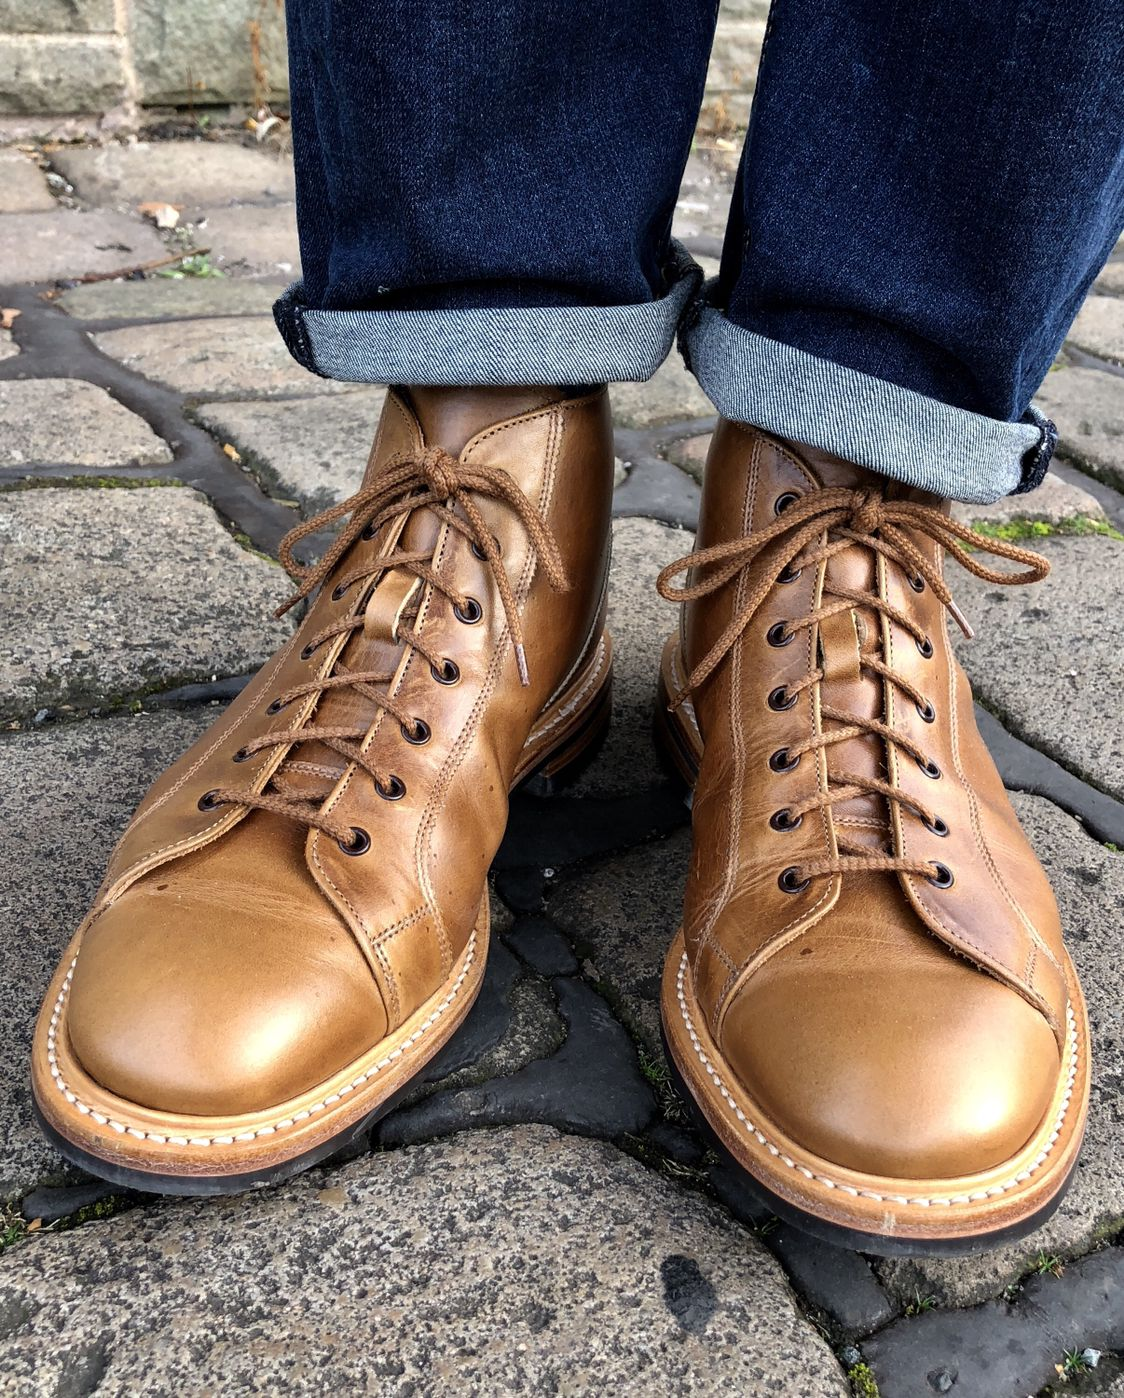 My Trickers Ethan Monkey Boots..04/11